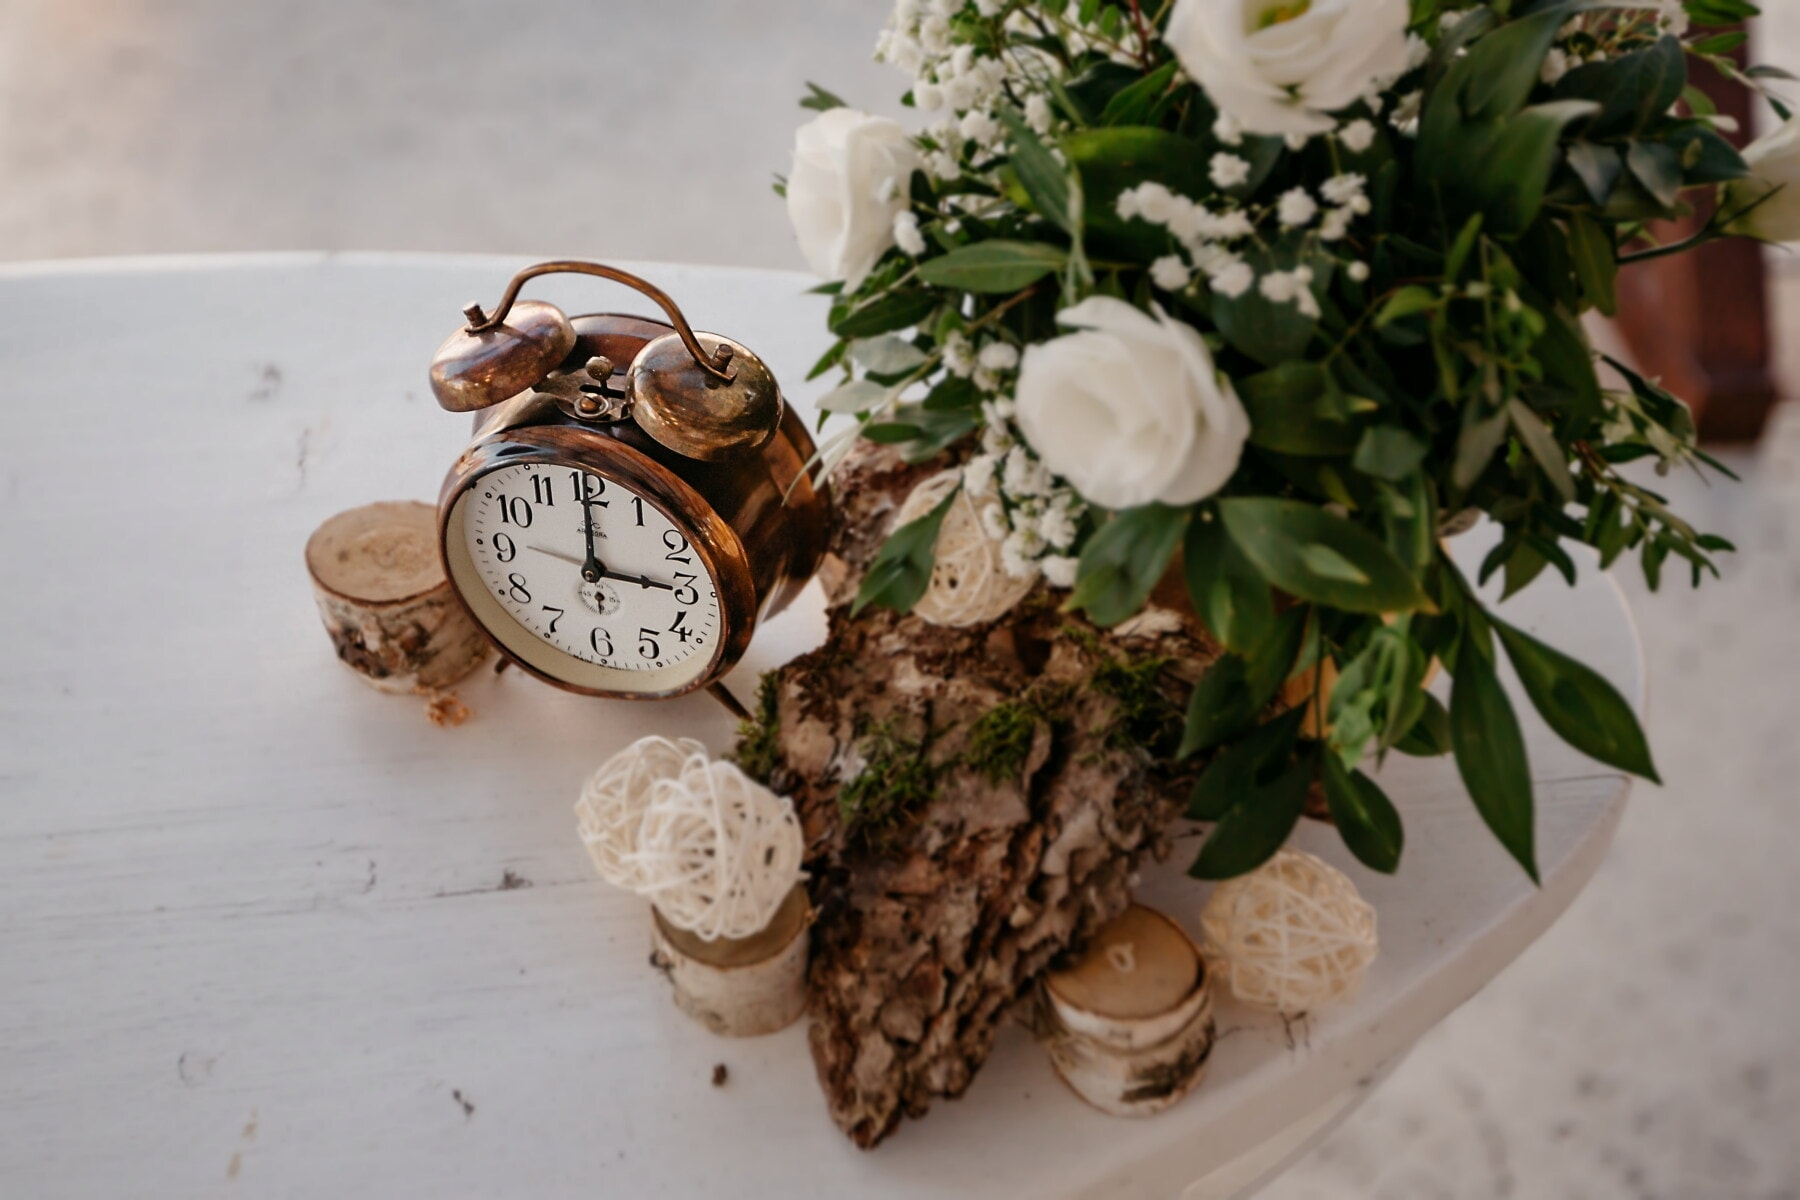 copper, alarm clock, analog clock, mechanism, clock, time, still life, flower, leaf, nature